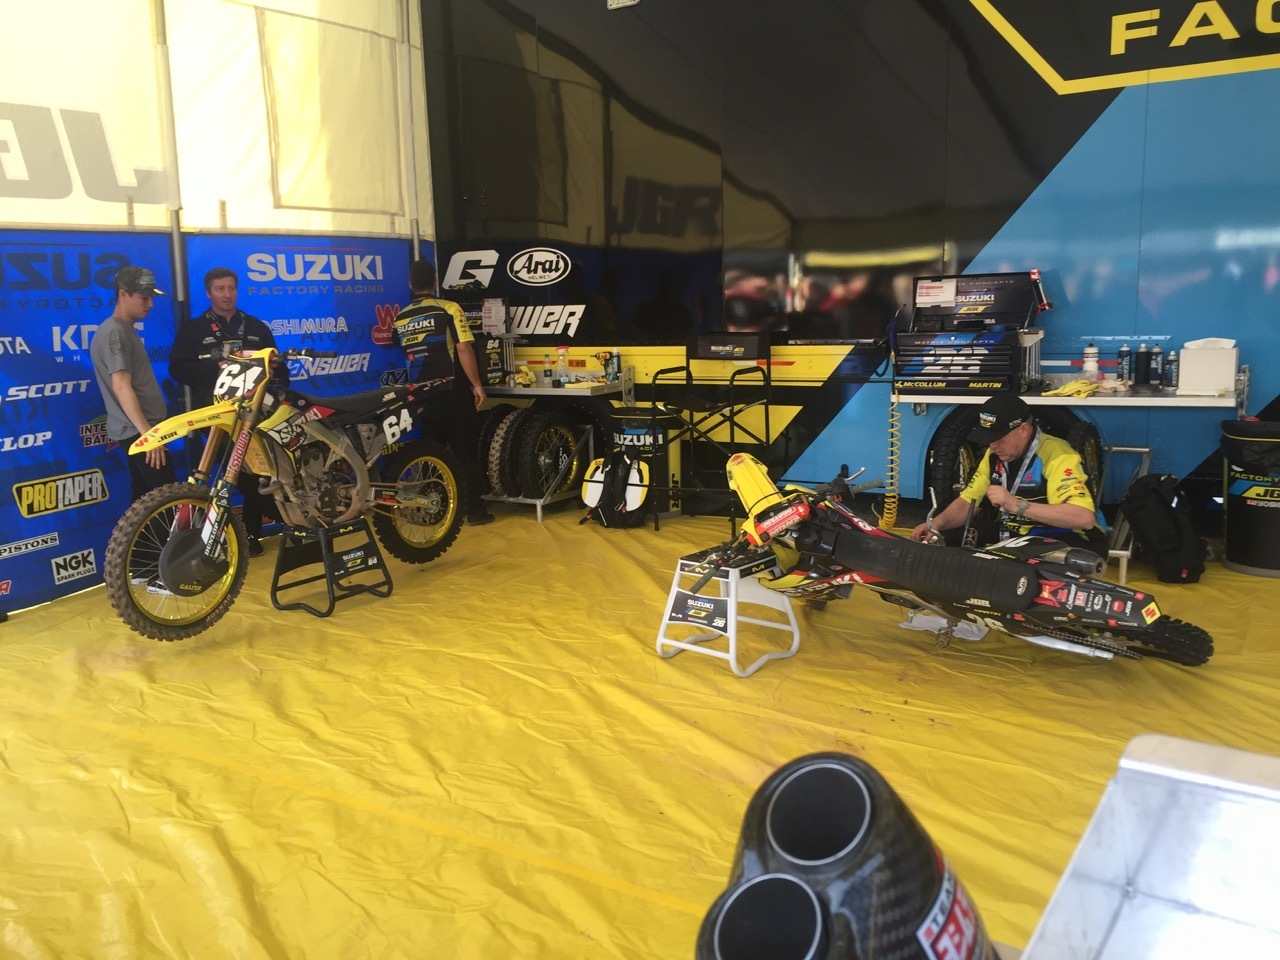 Supercross 2019 Atlanta - JGR Suzuki